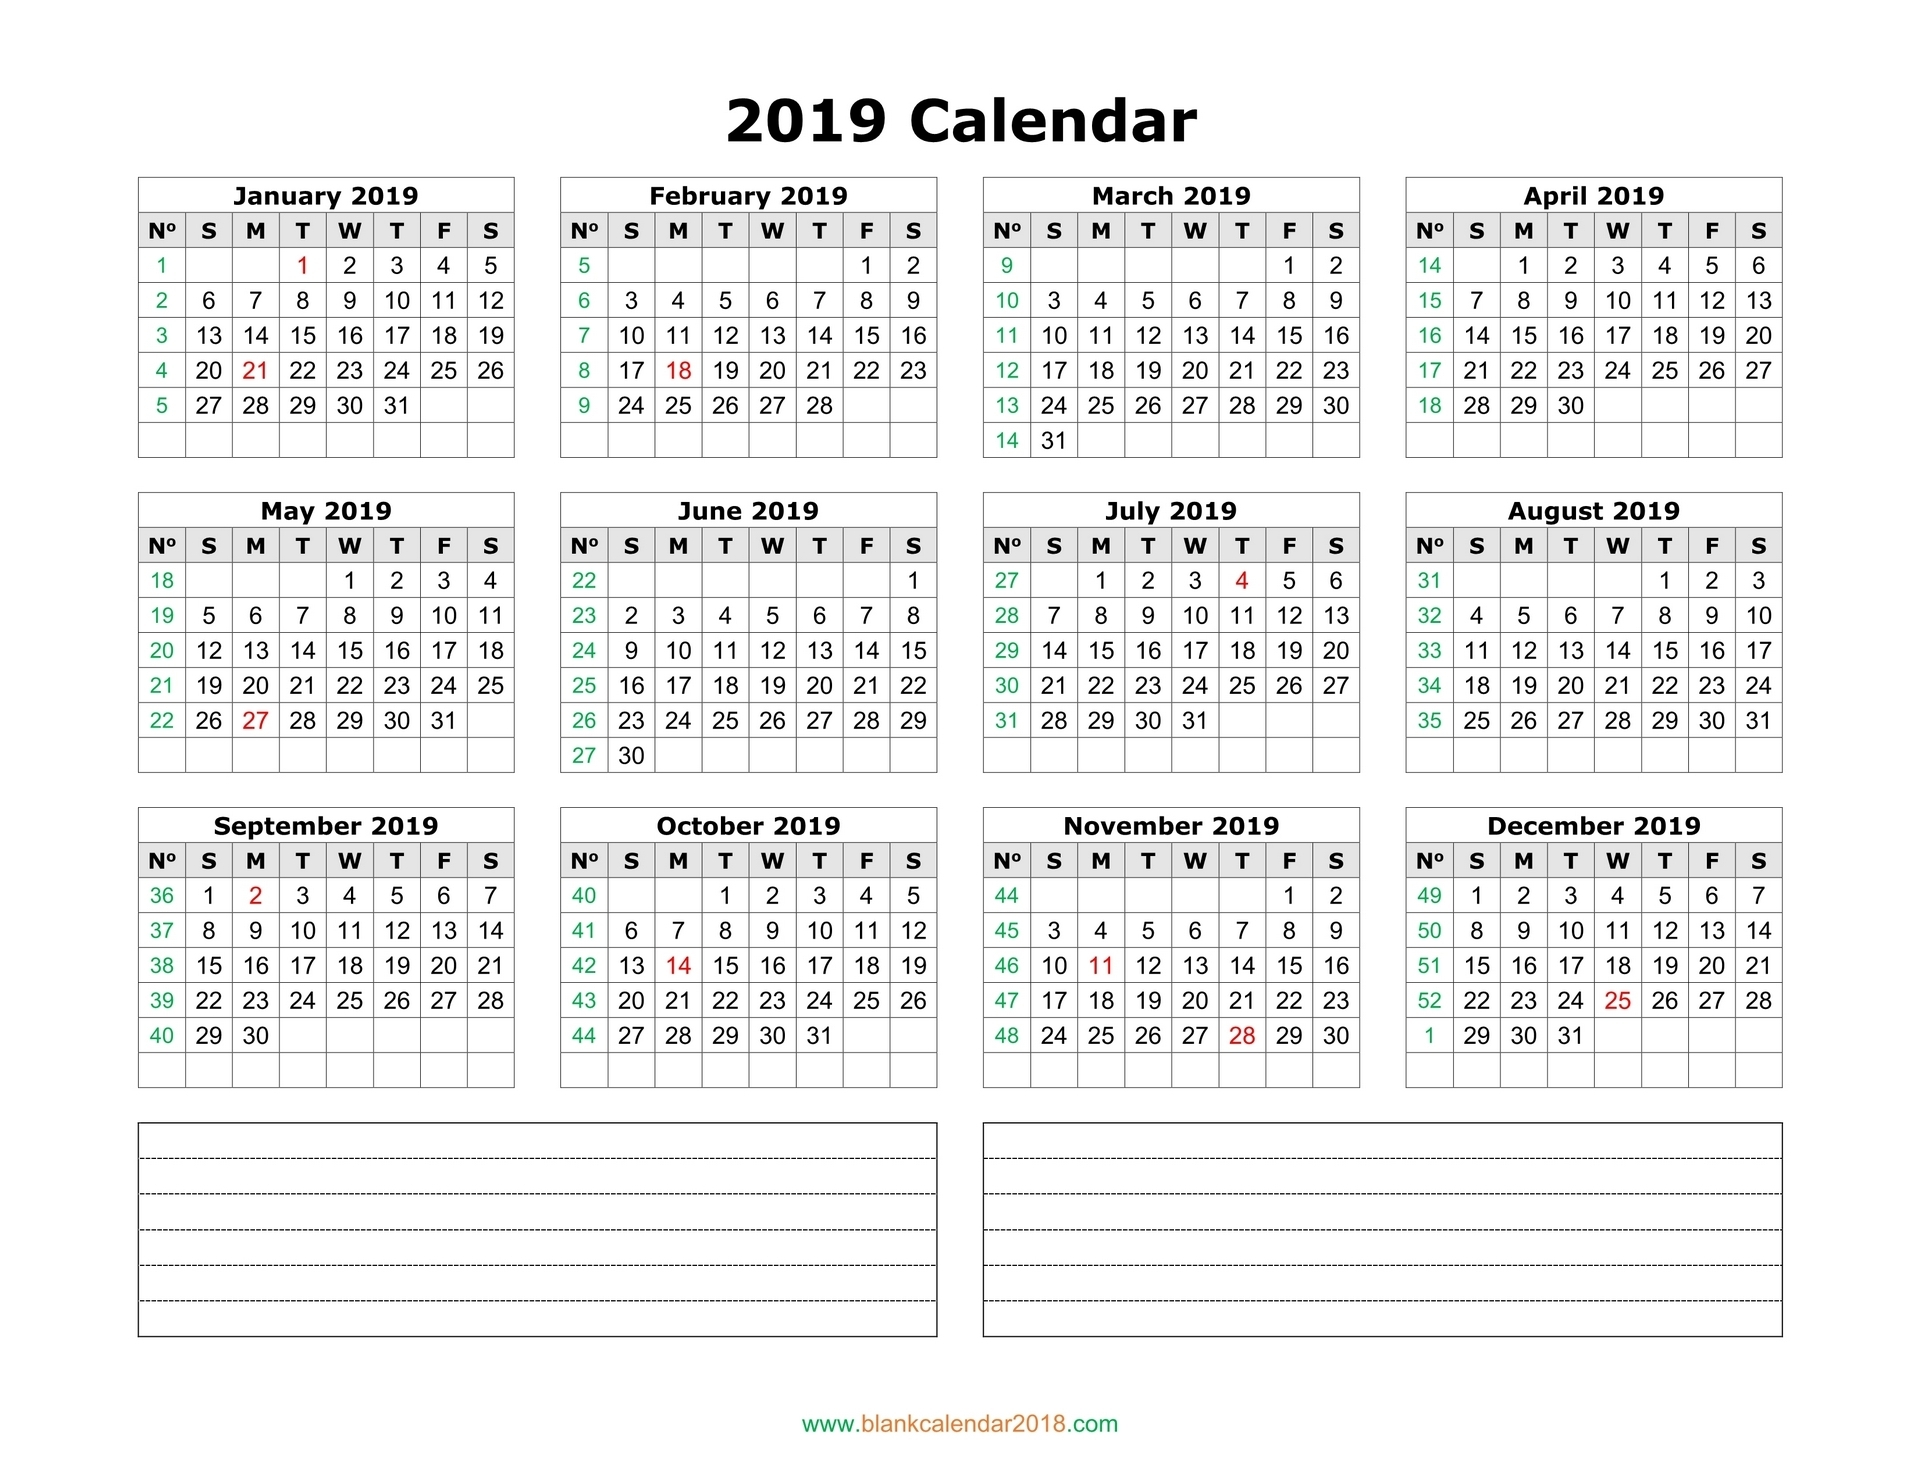 Blank Calendar 2019 throughout One Page 2 Years Calendar 2019 2020 With Week Number